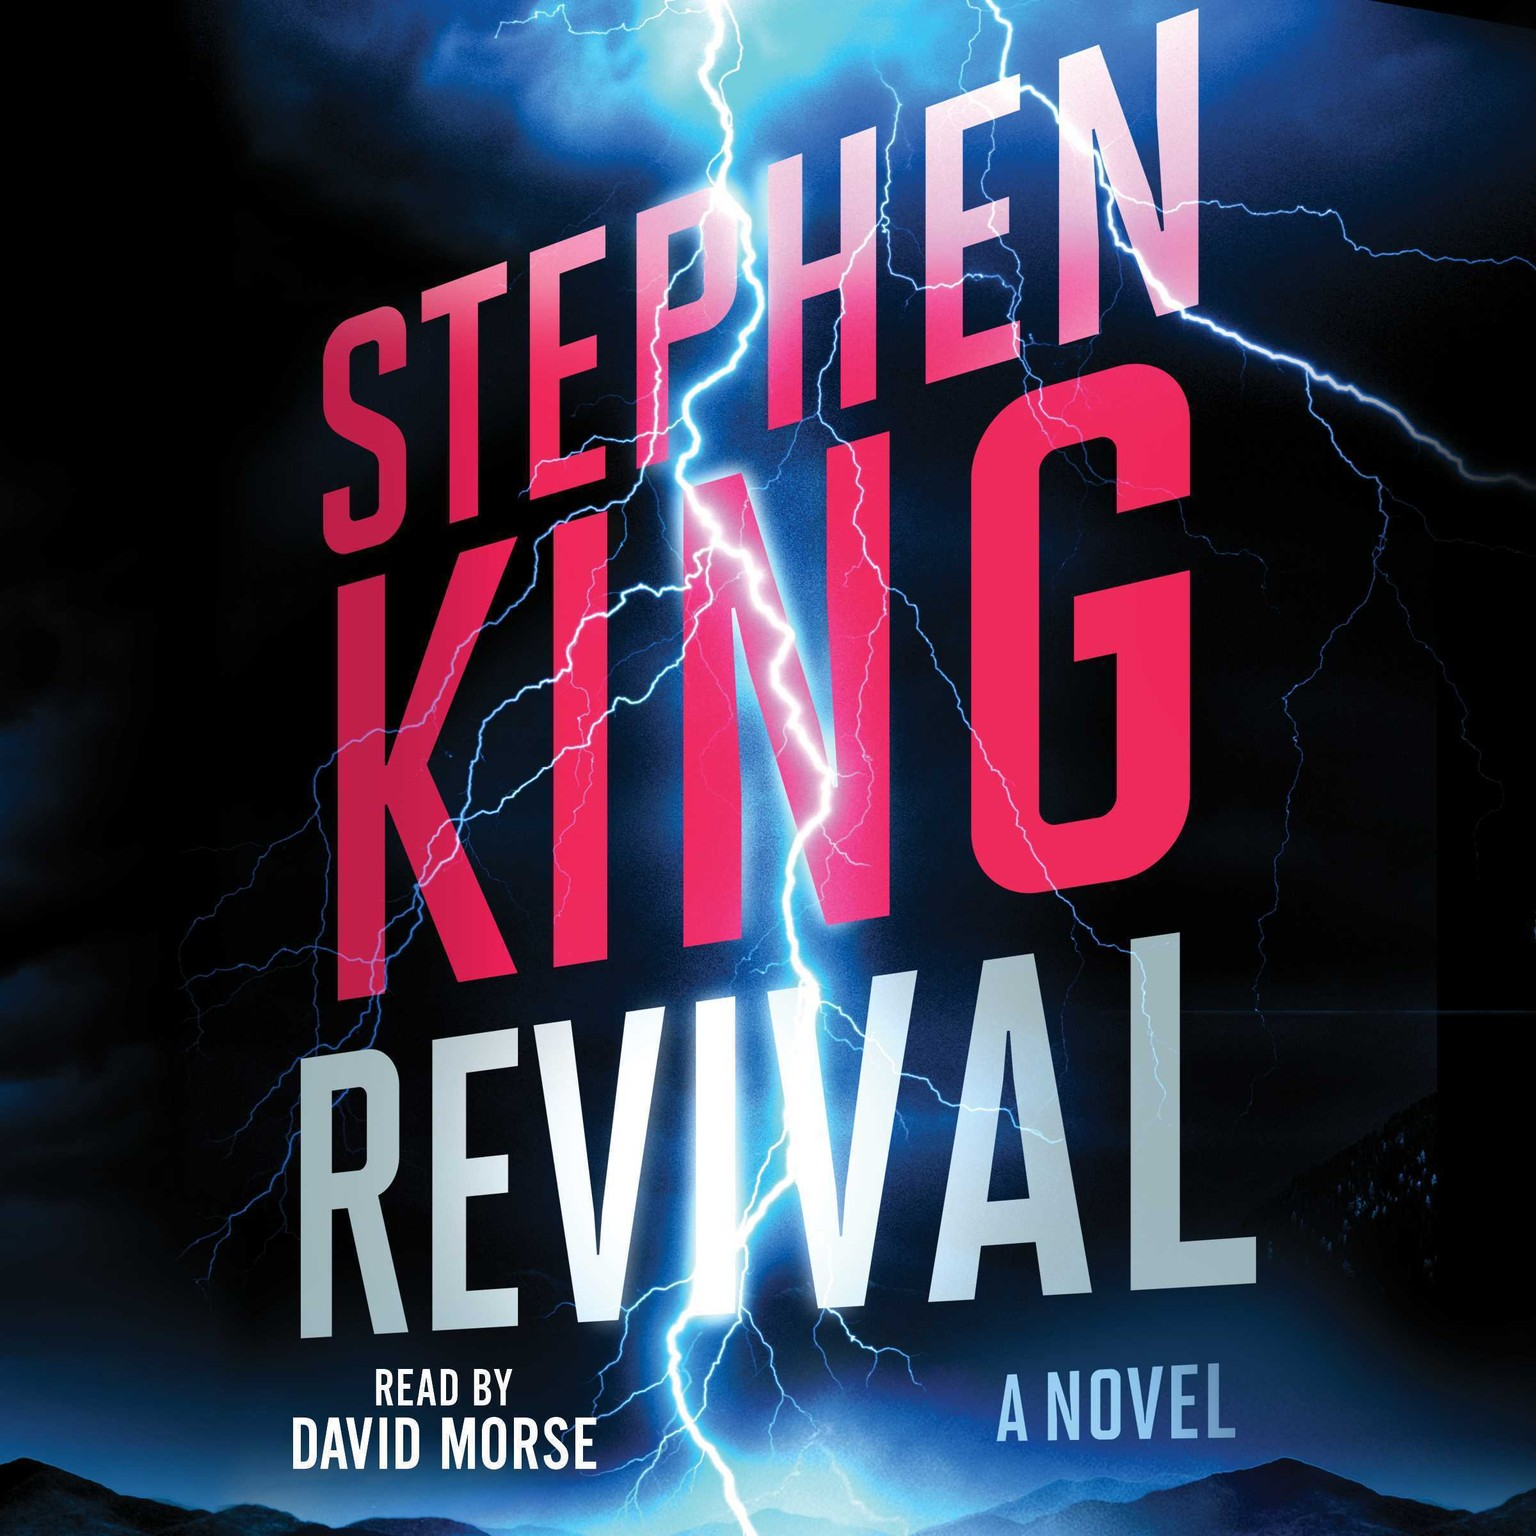 Revival by Stephen King – Audiobook Review